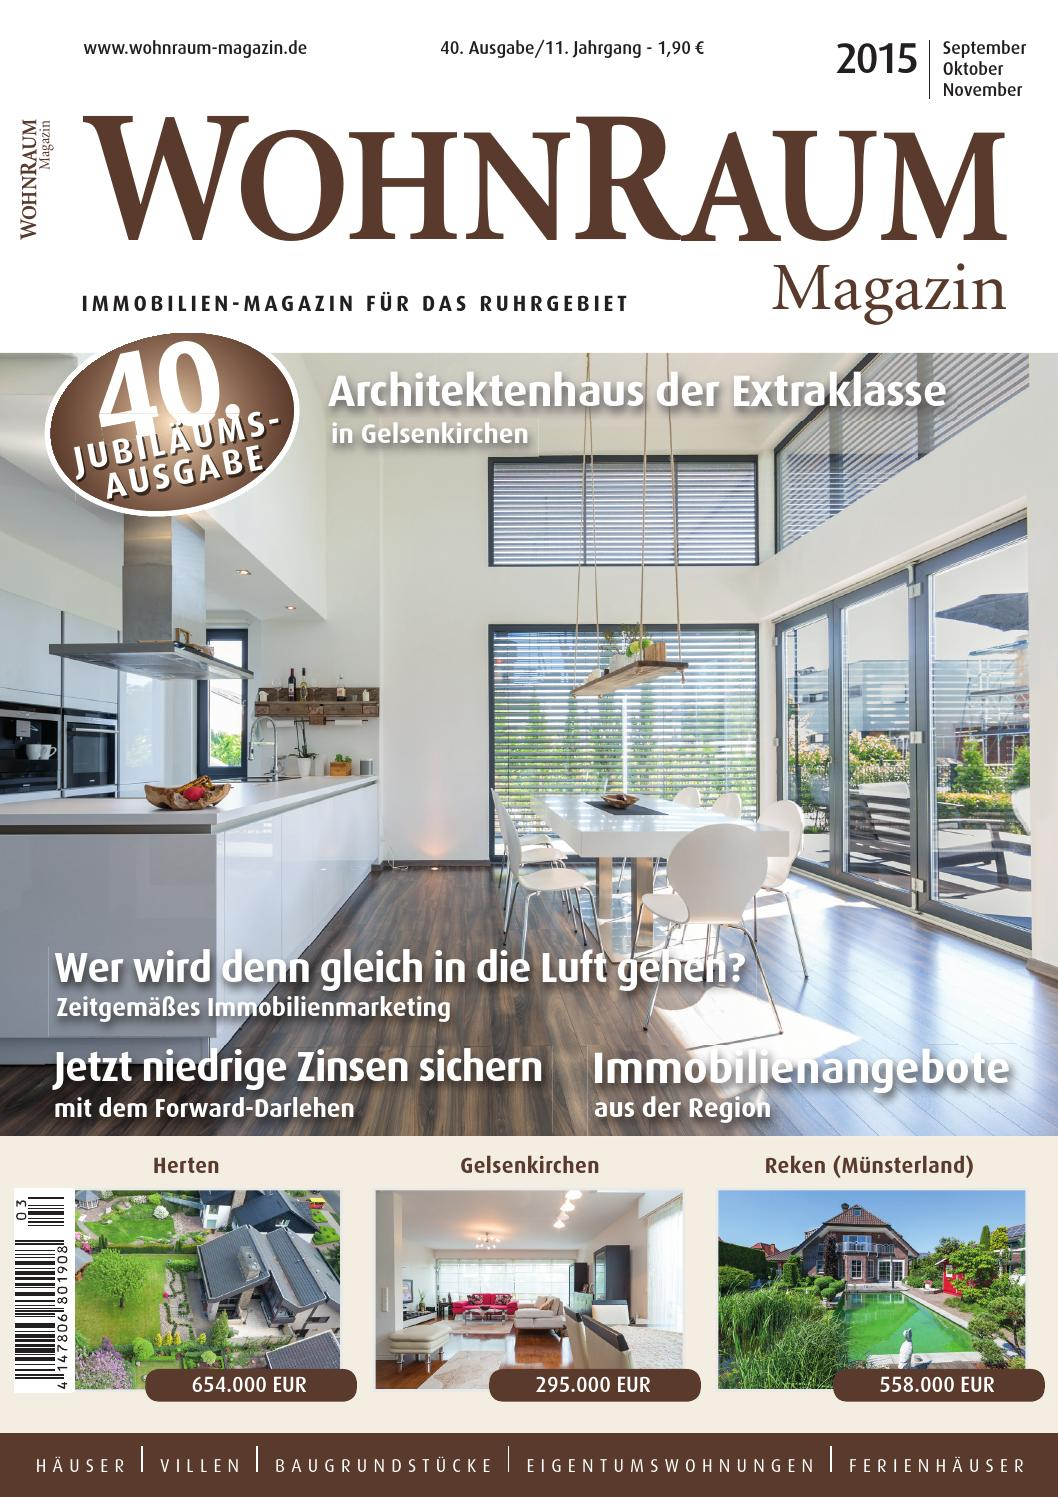 40 ausgabe wohnraum magazin by hundt media verlag issuu. Black Bedroom Furniture Sets. Home Design Ideas